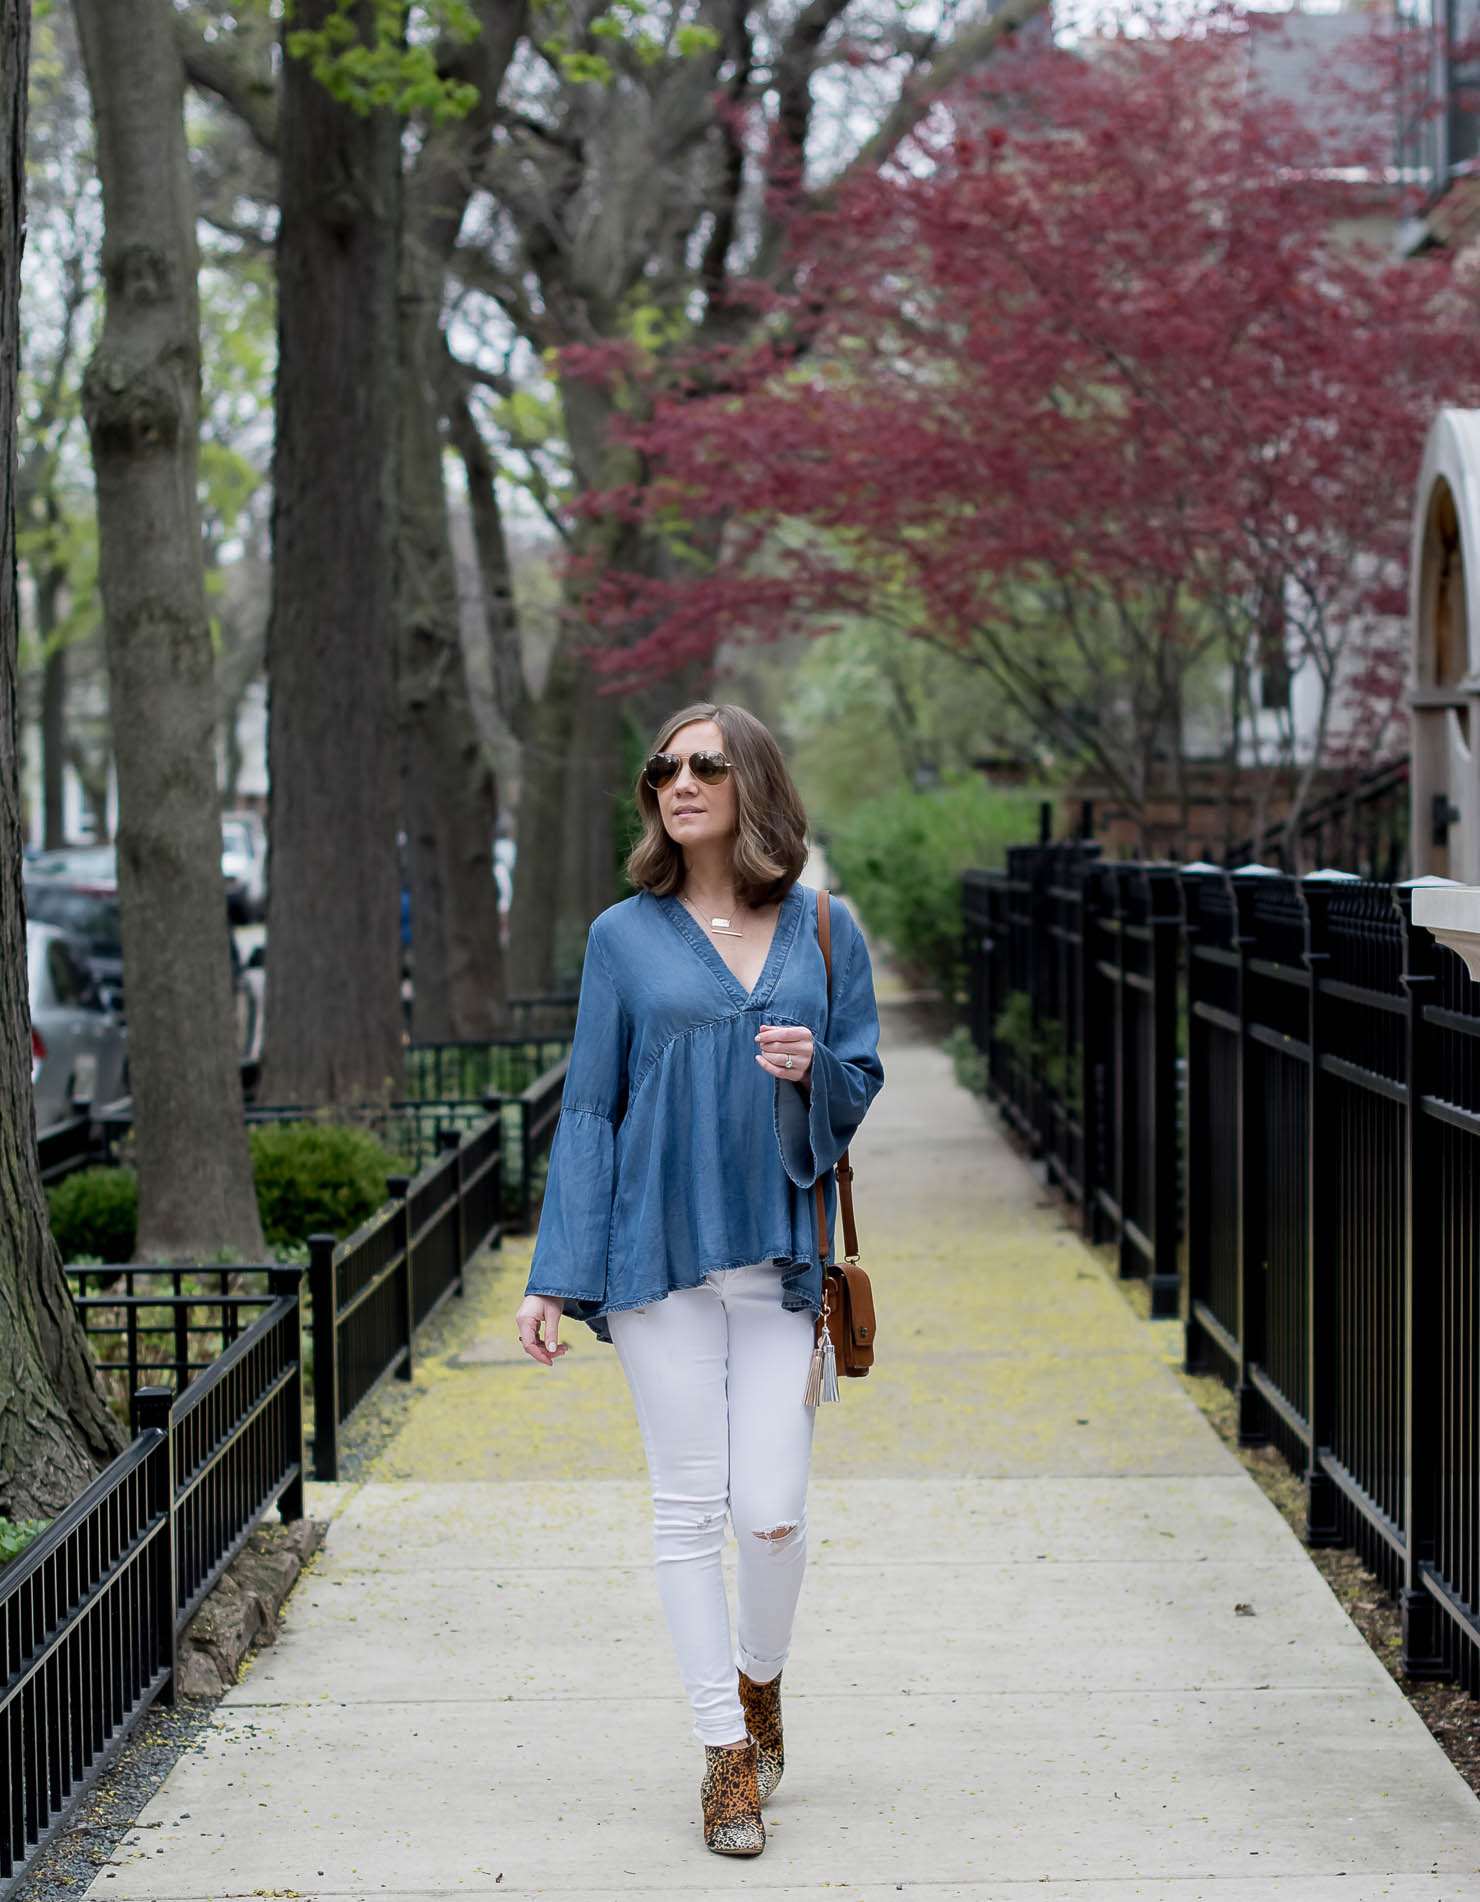 transitioning-white-jeans-for-fall-hm-denim-bell-sleeve-top-matisse-leopard-booties-metallic-bag-tassel-charms-13